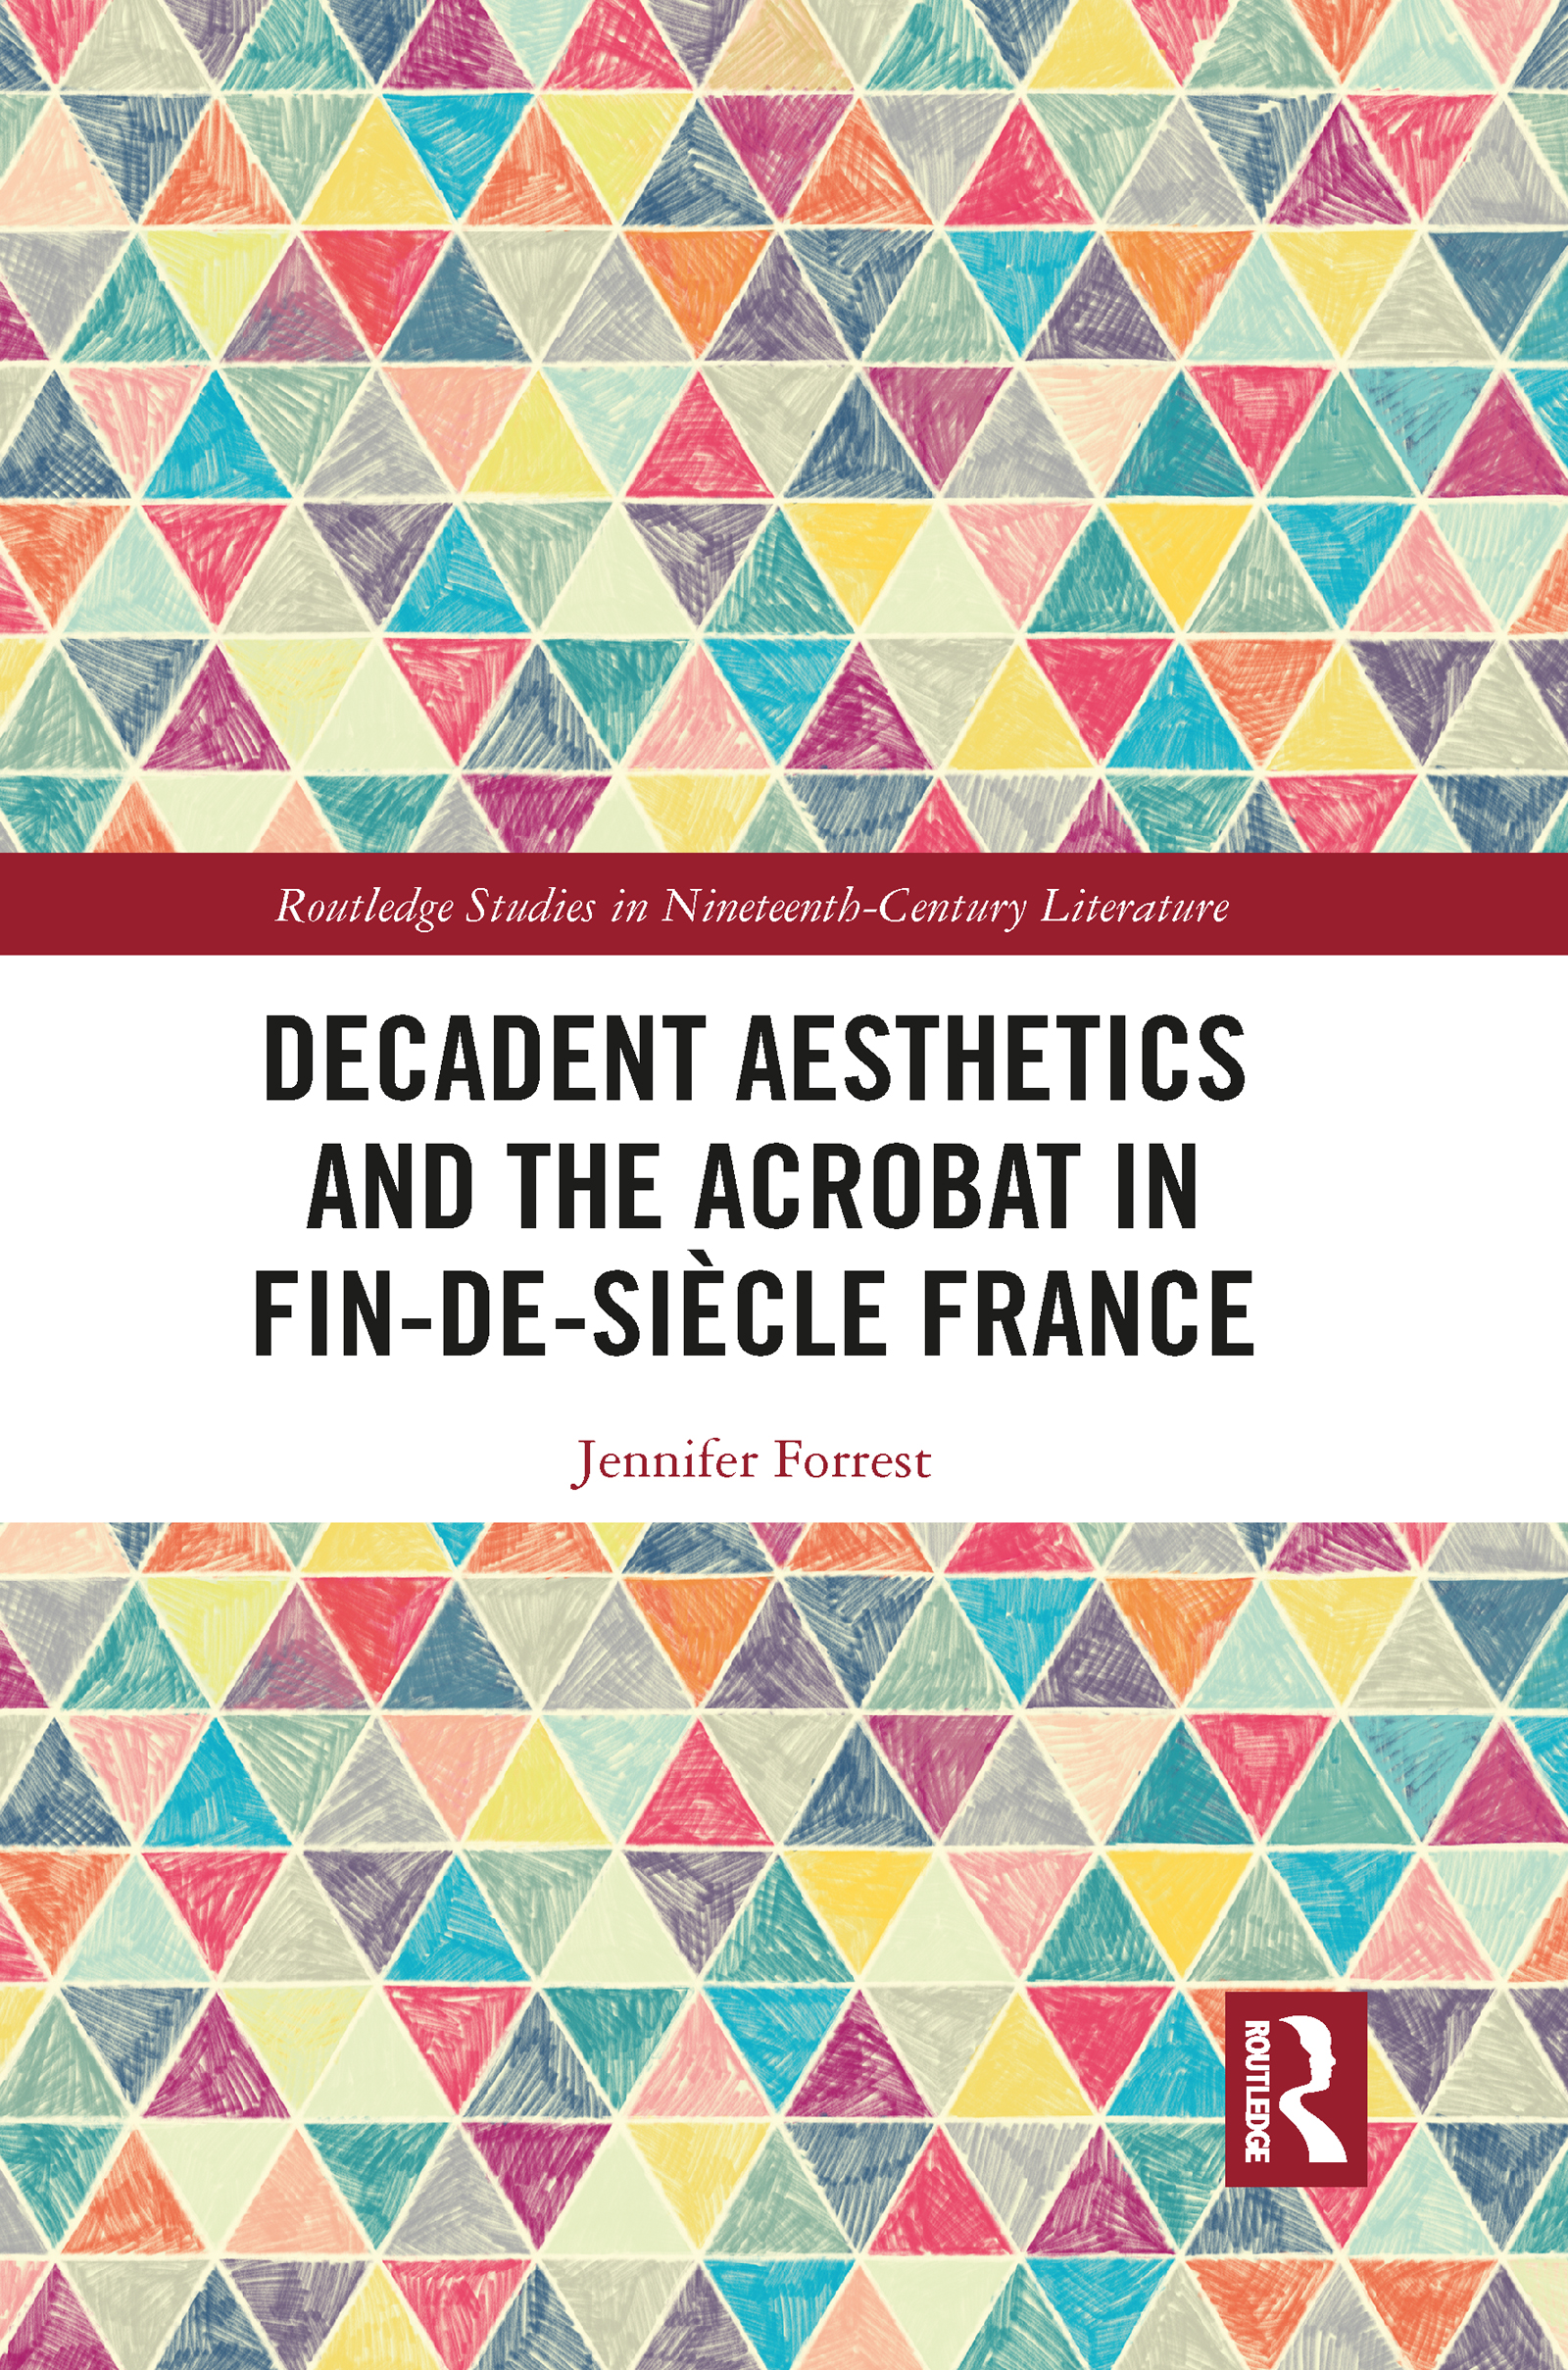 Decadent Aesthetics and the Acrobat in French Fin de siècle